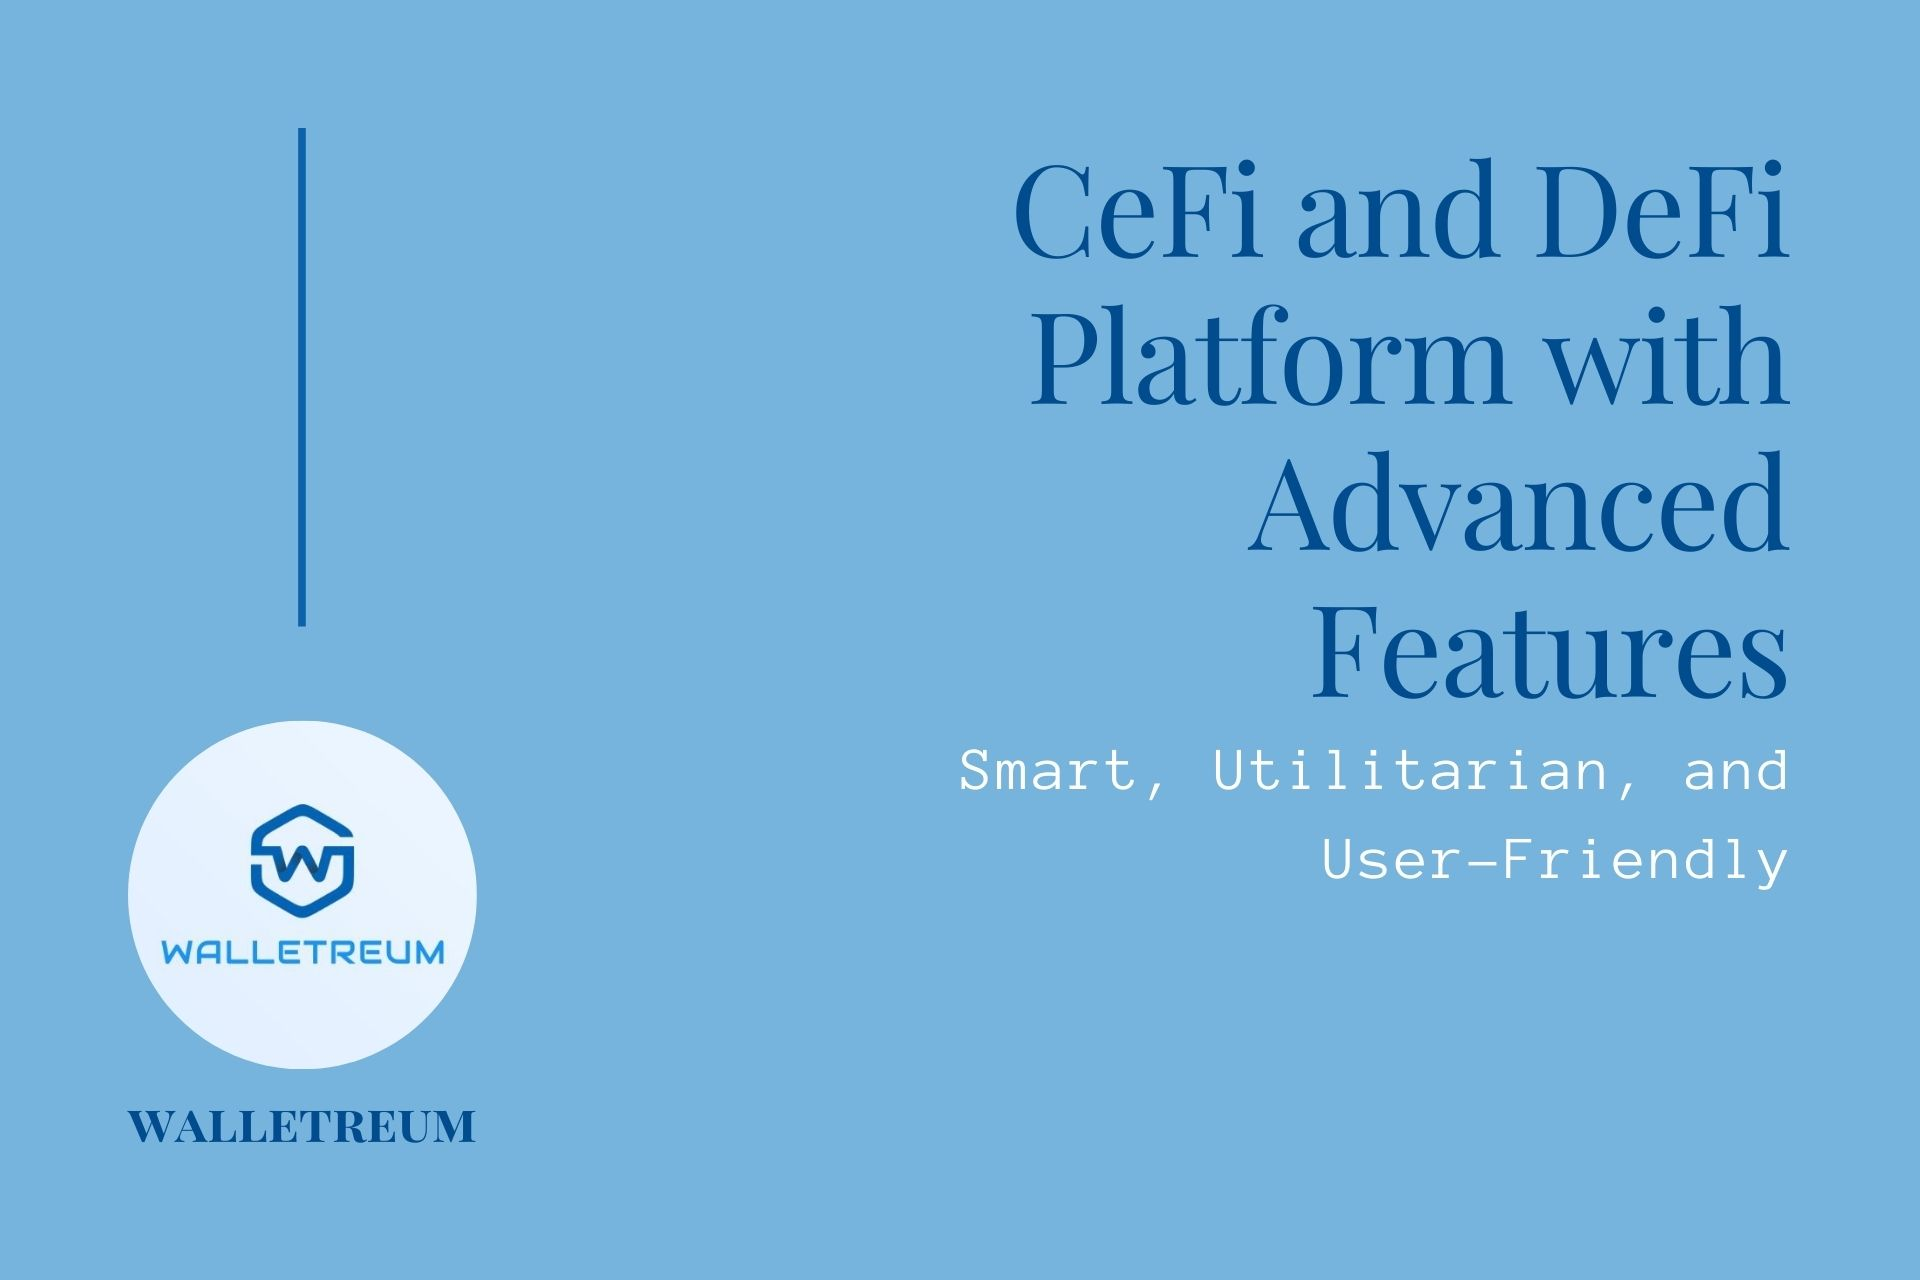 Walletreum | Creating a Smart, Utilitarian, and User-Friendly CeFi & DeFi Platform with Advanced Features